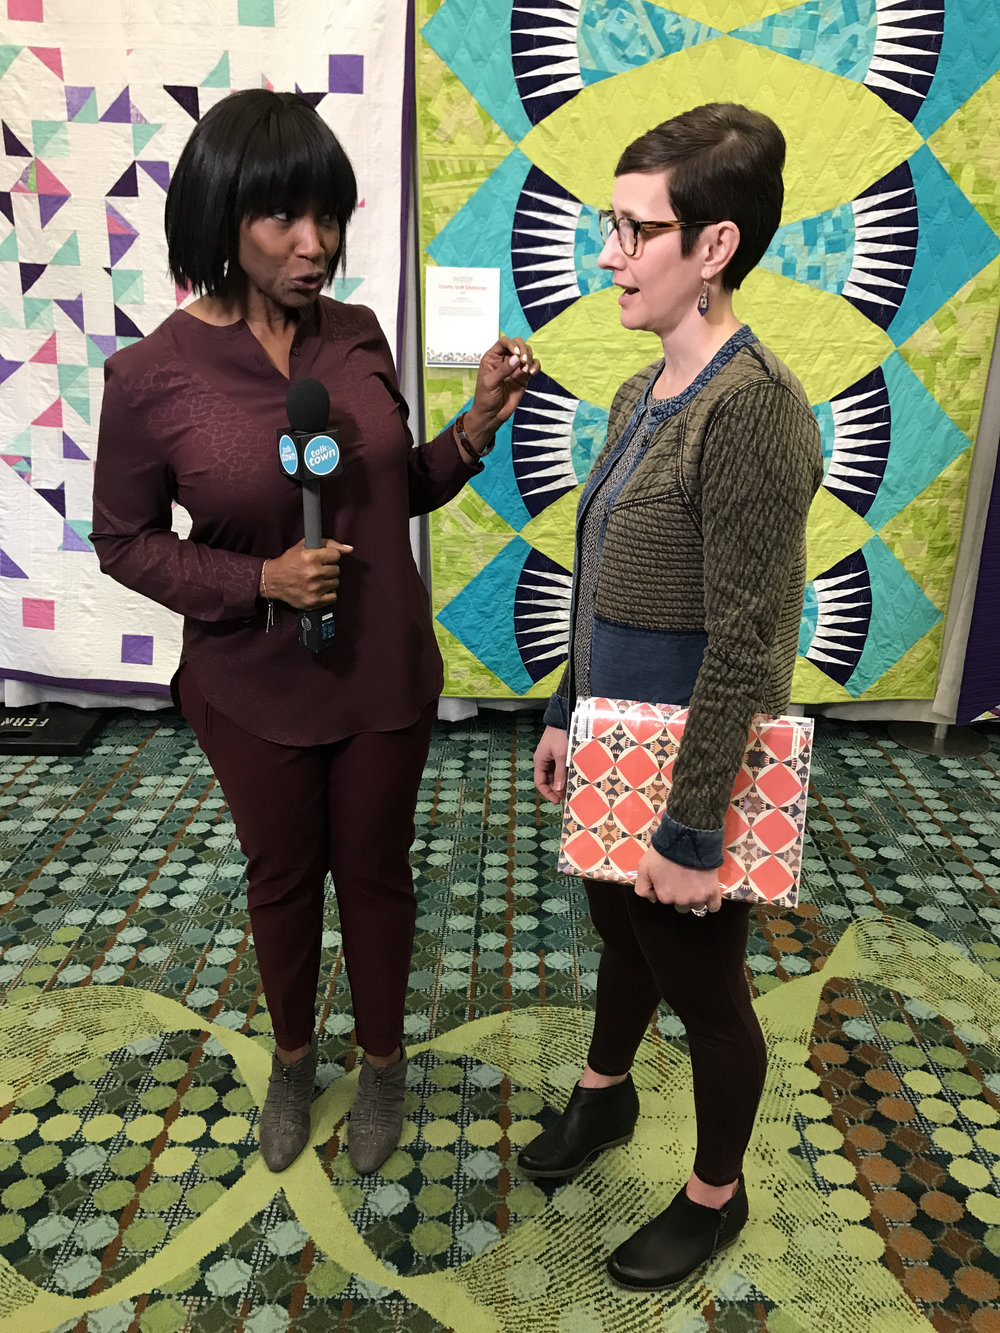 Kelly was interviewed by a local news station about our modern basket quilt